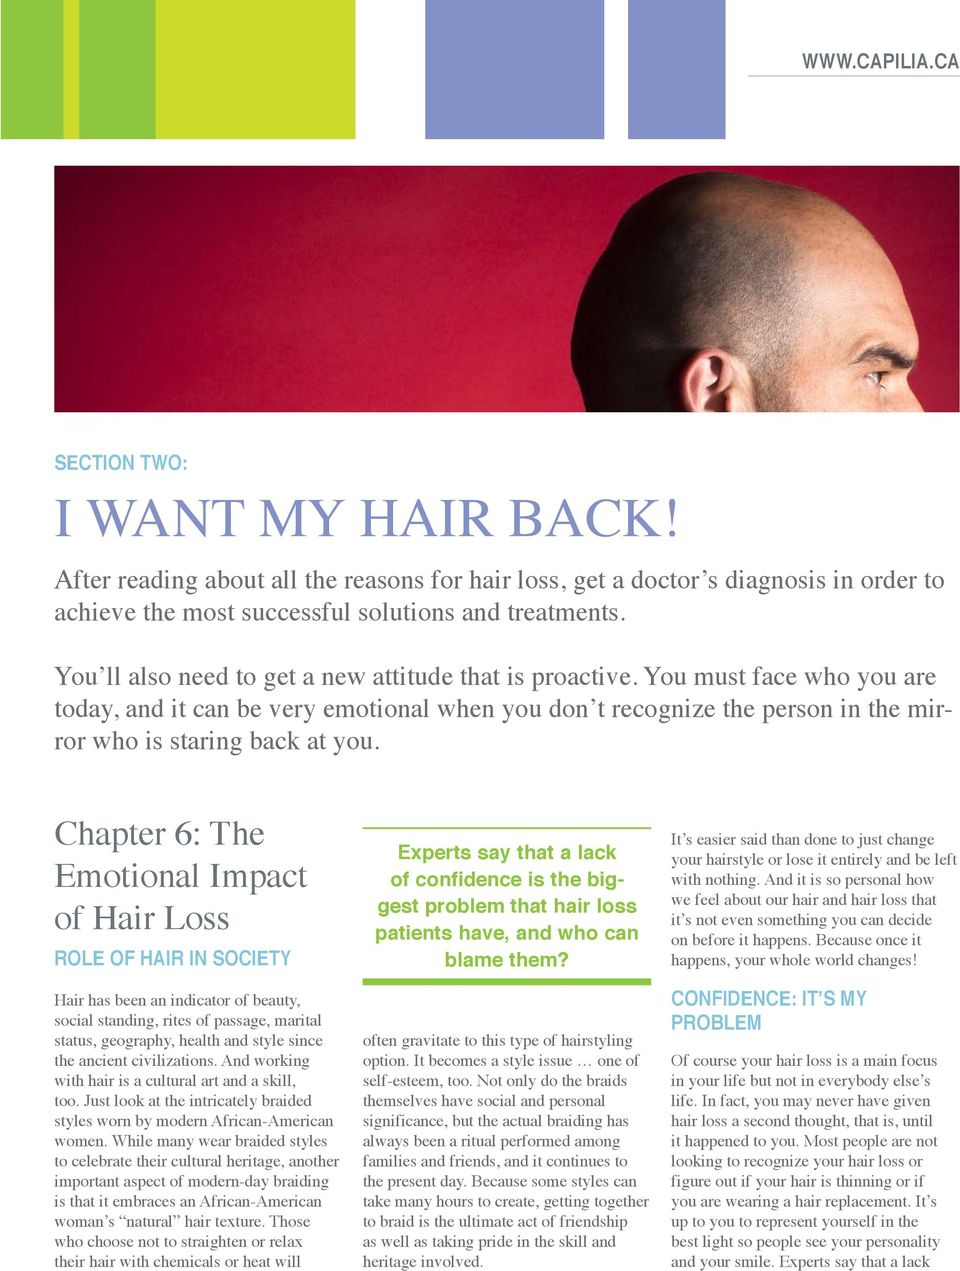 Chapter 6: The Emotional Impact of Hair Loss ROLE OF HAIR IN SOCIETY Hair has been an indicator of beauty, social standing, rites of passage, marital status, geography, health and style since the